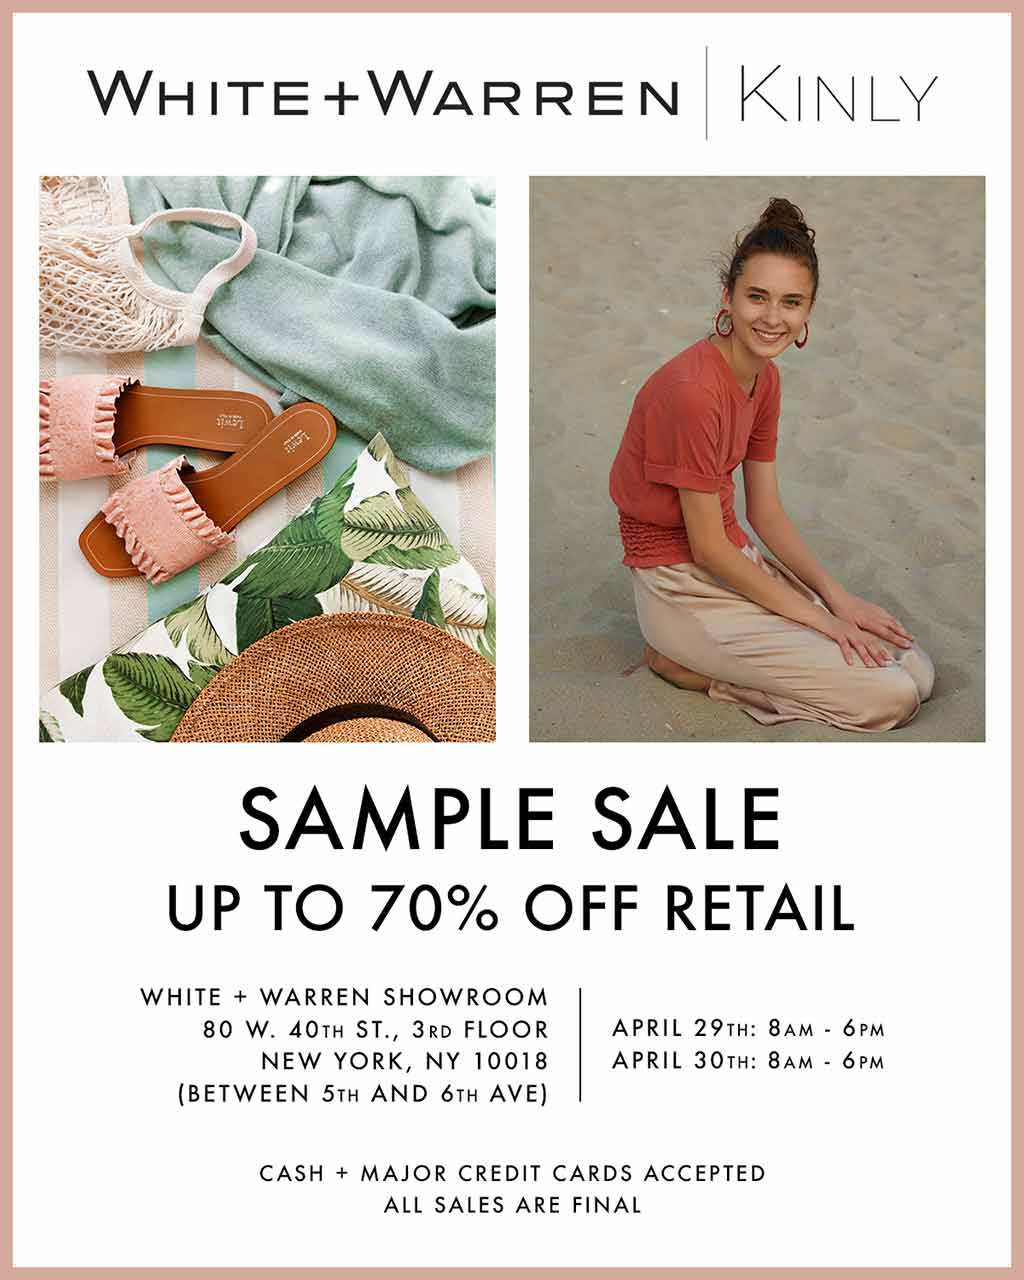 White + Warren Kinly NYC Sample Sale